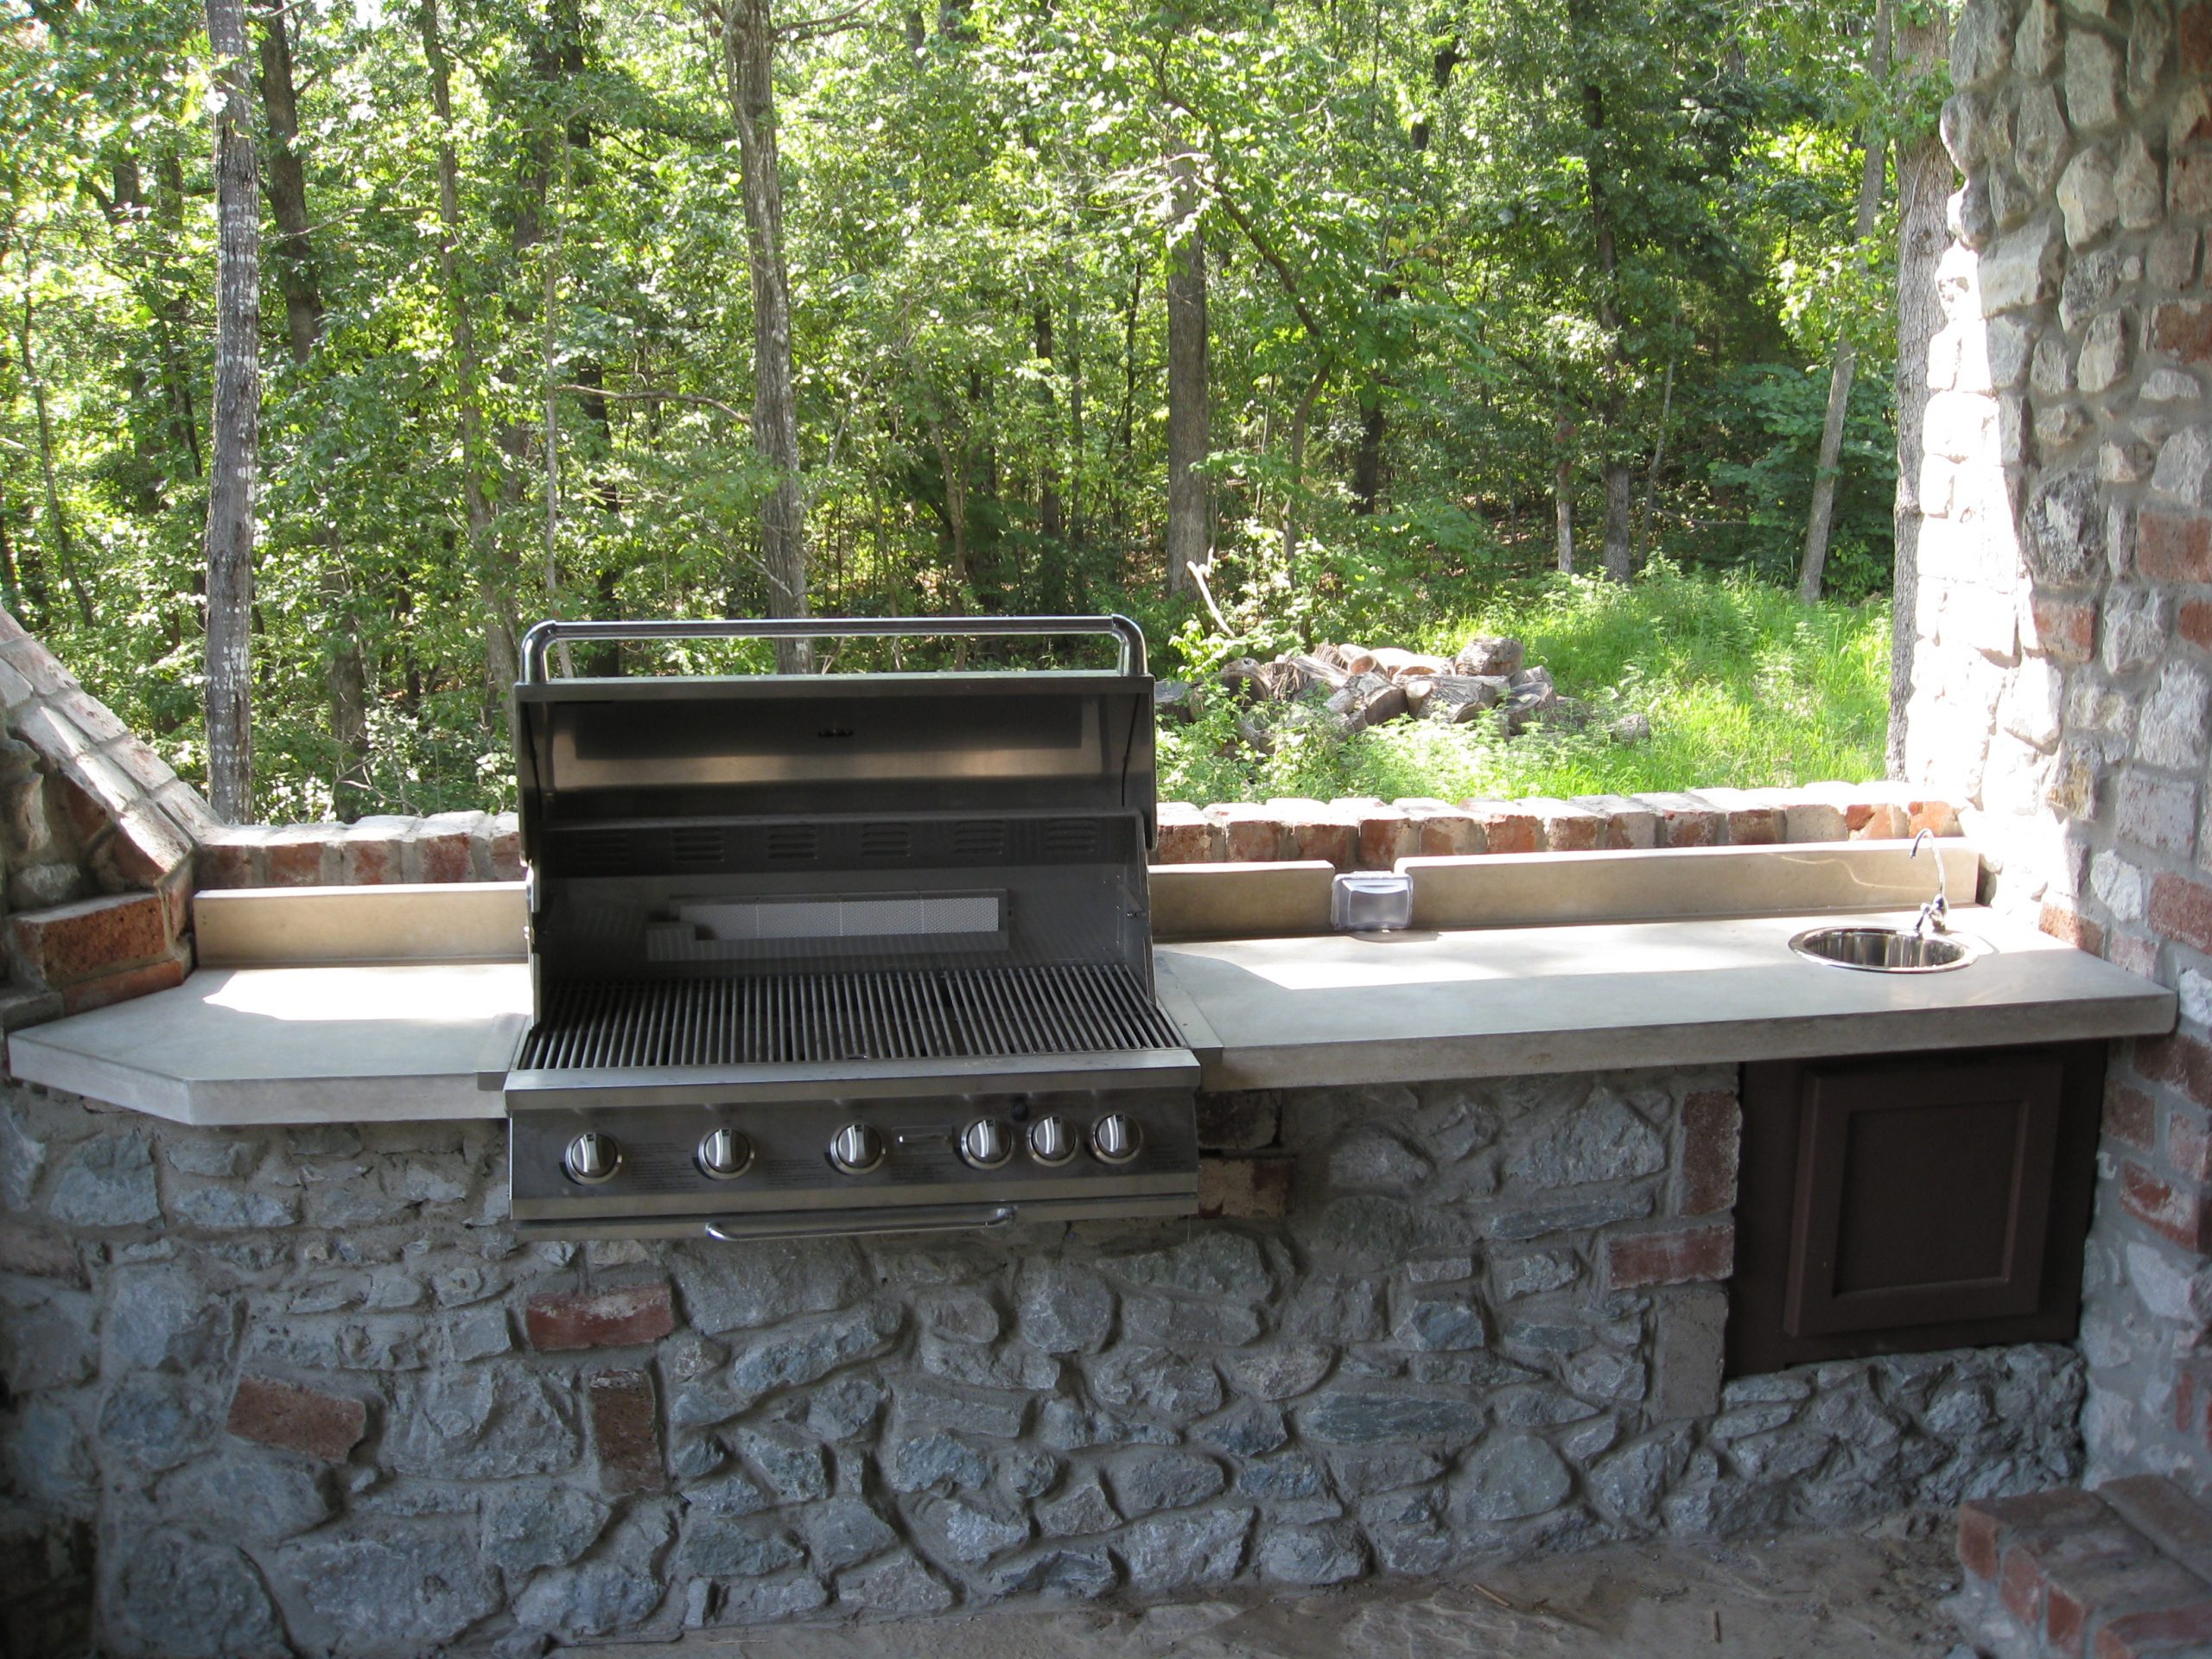 concrete outdoor kitchen poured outdoor kitchen grill in concrete concreteoutdoorkitchen concrete creations nwa